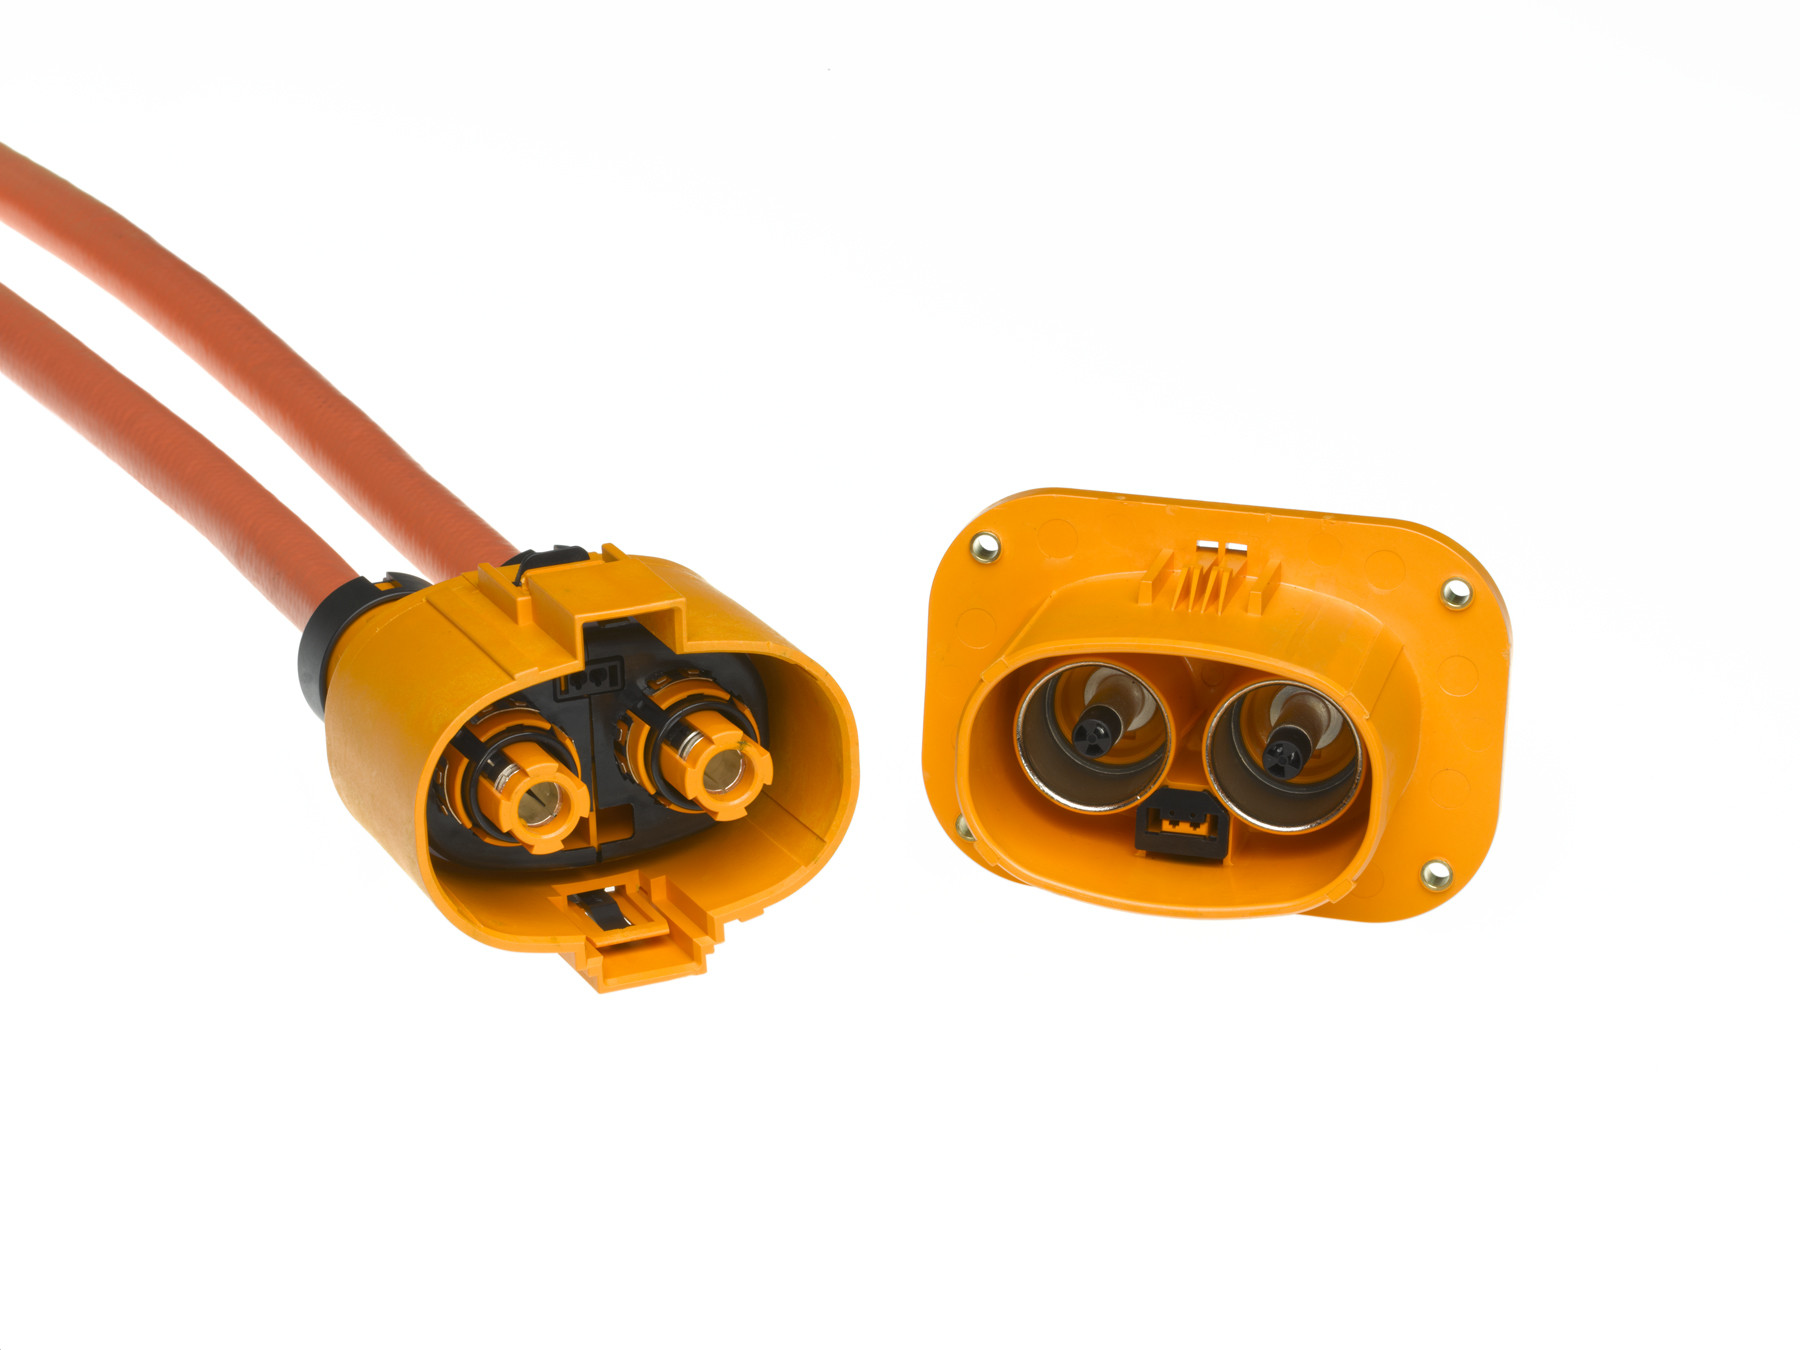 Molex Imperium™ High-Voltage/High-Current (HVHC) Connector System Meets the Commercial Vehicle Industry's Electrification Challenges